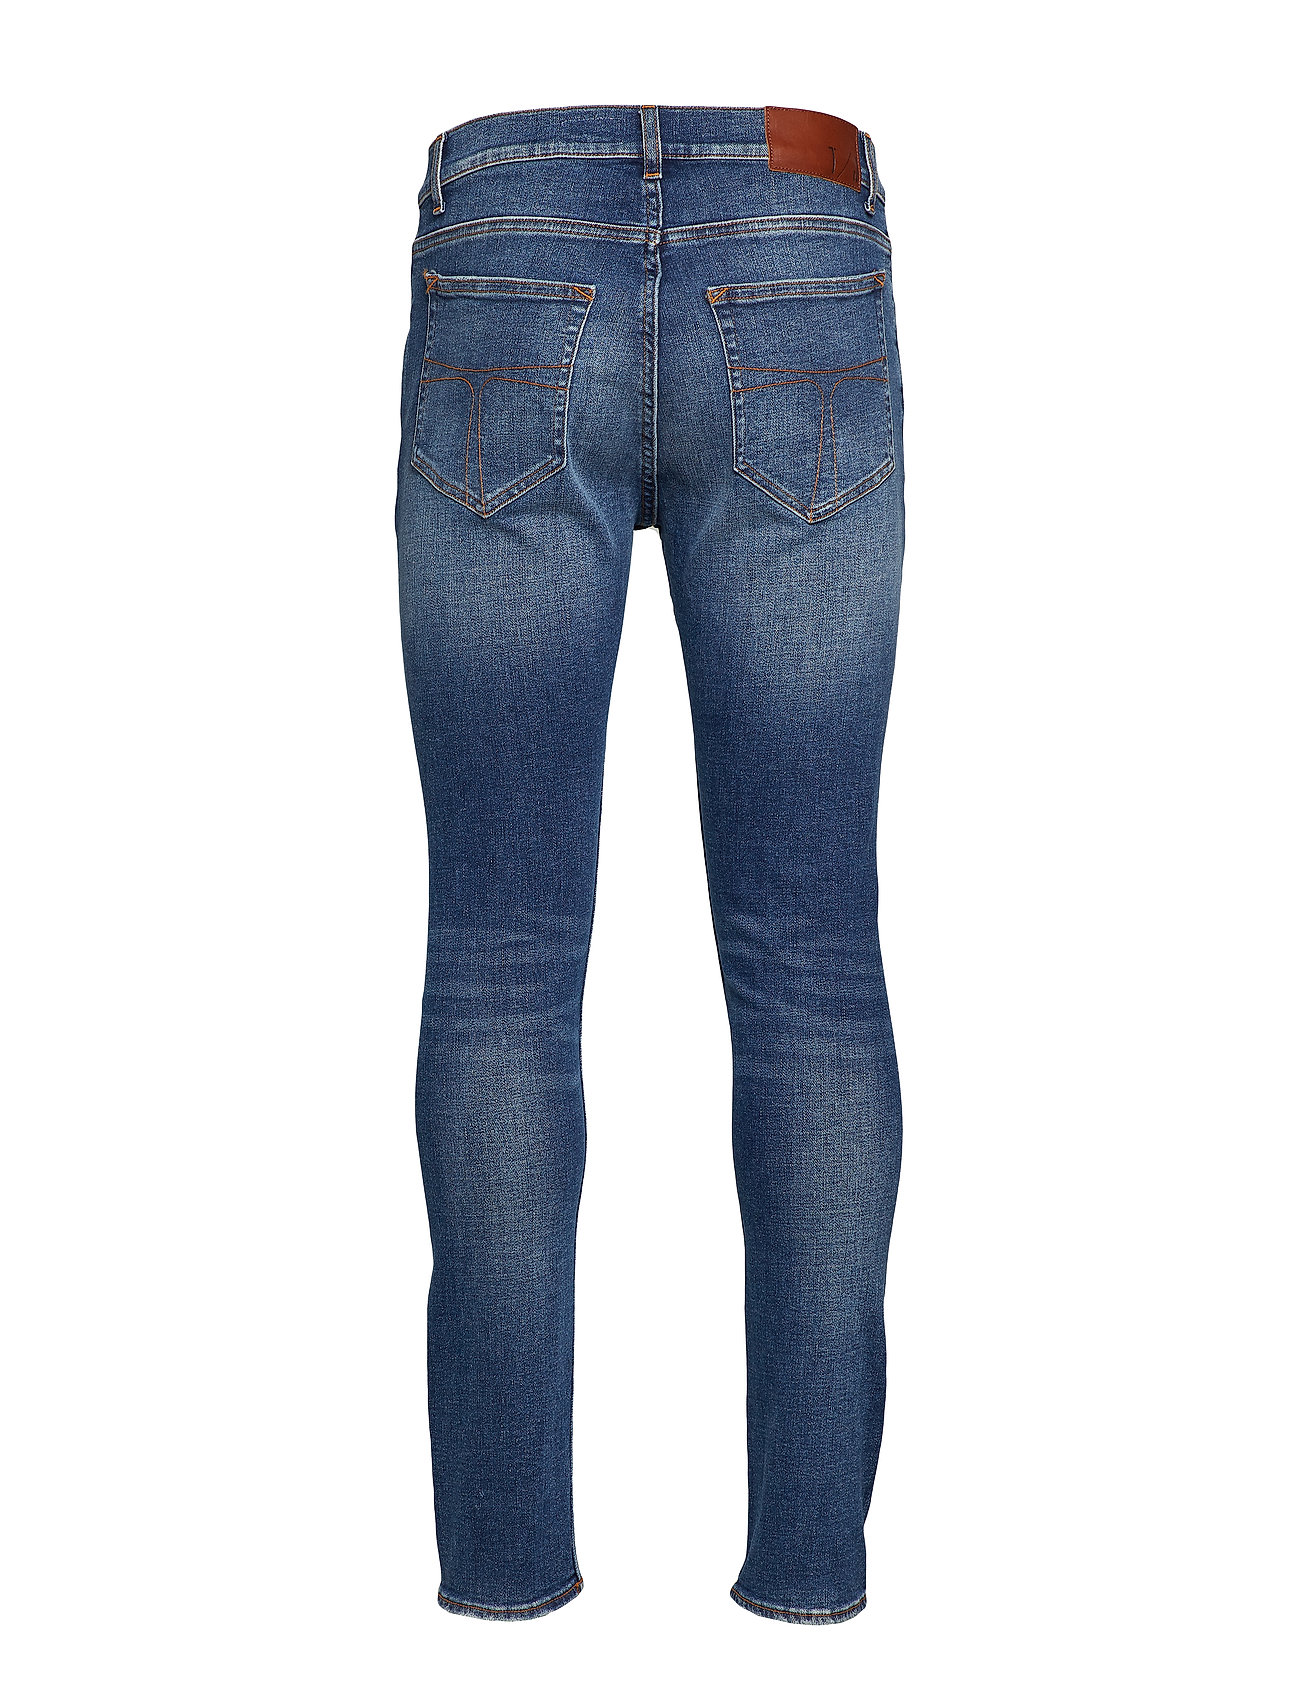 Of BlueTiger BlueTiger Sweden Jeans Sweden Jeans Of Evolvemedium Evolvemedium Evolvemedium N8kwPXZn0O